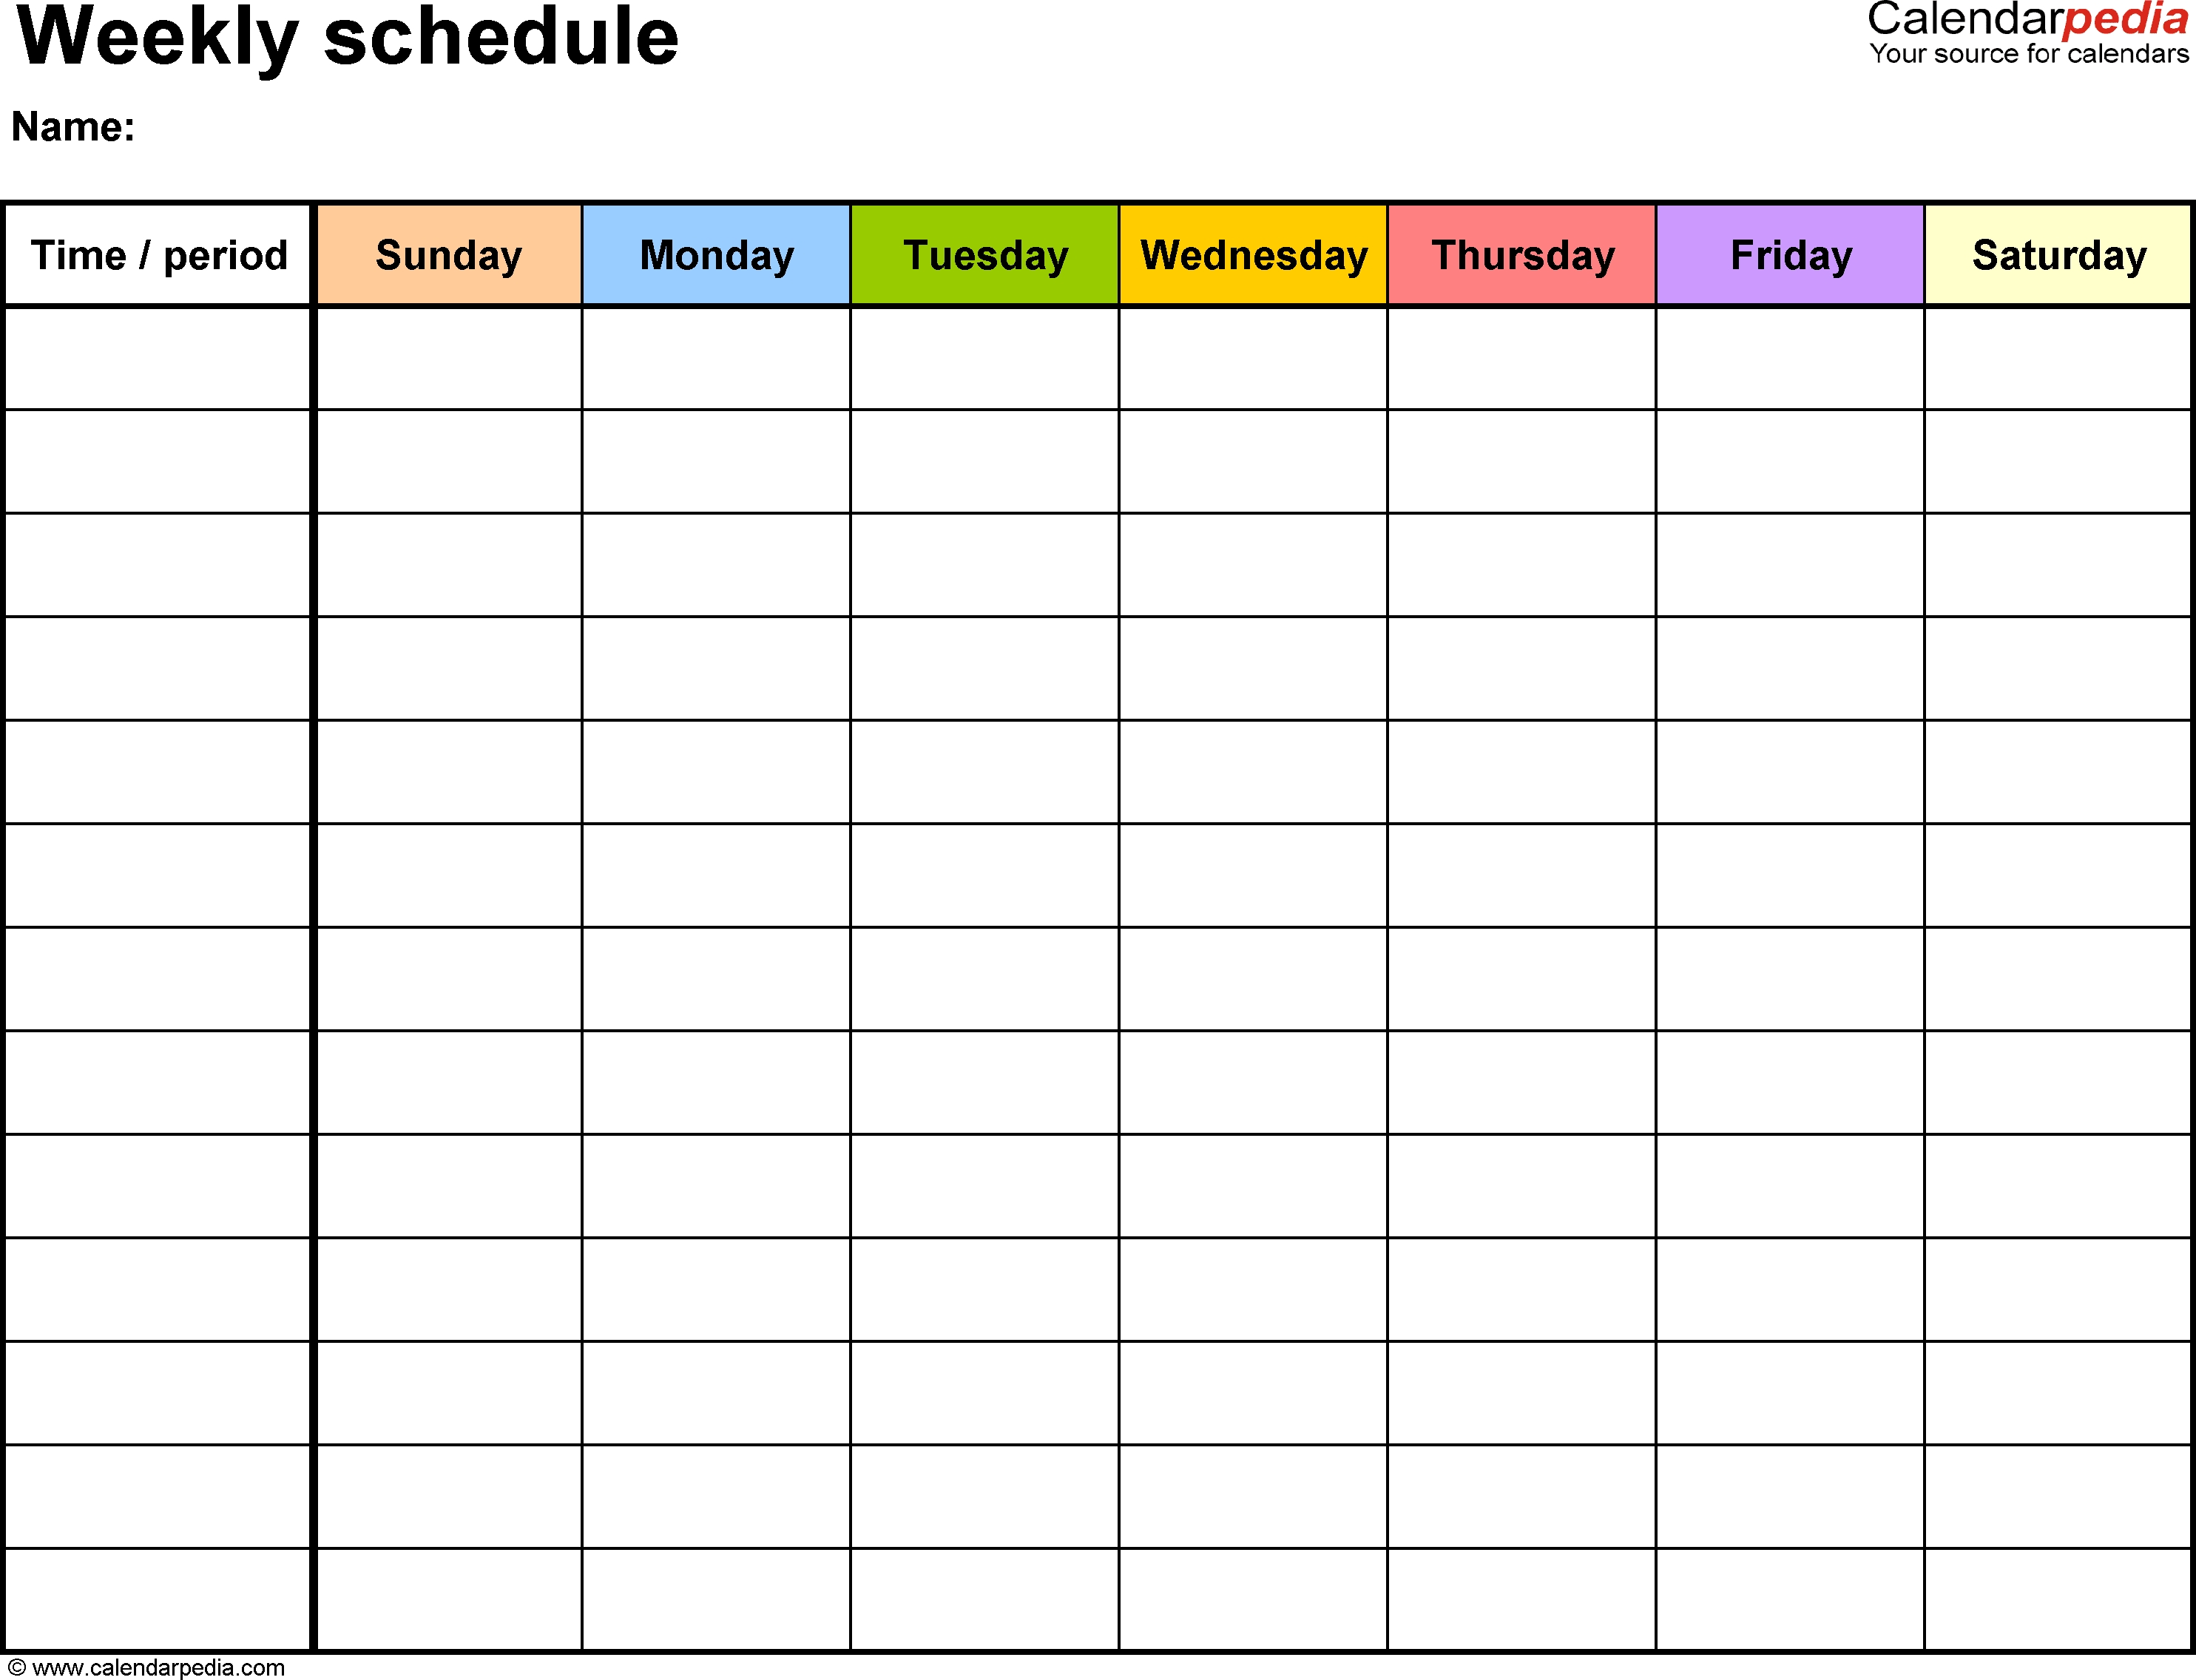 Free Weekly Schedule Templates For Word - 18 Templates with Monday Through Friday Schedule Printable